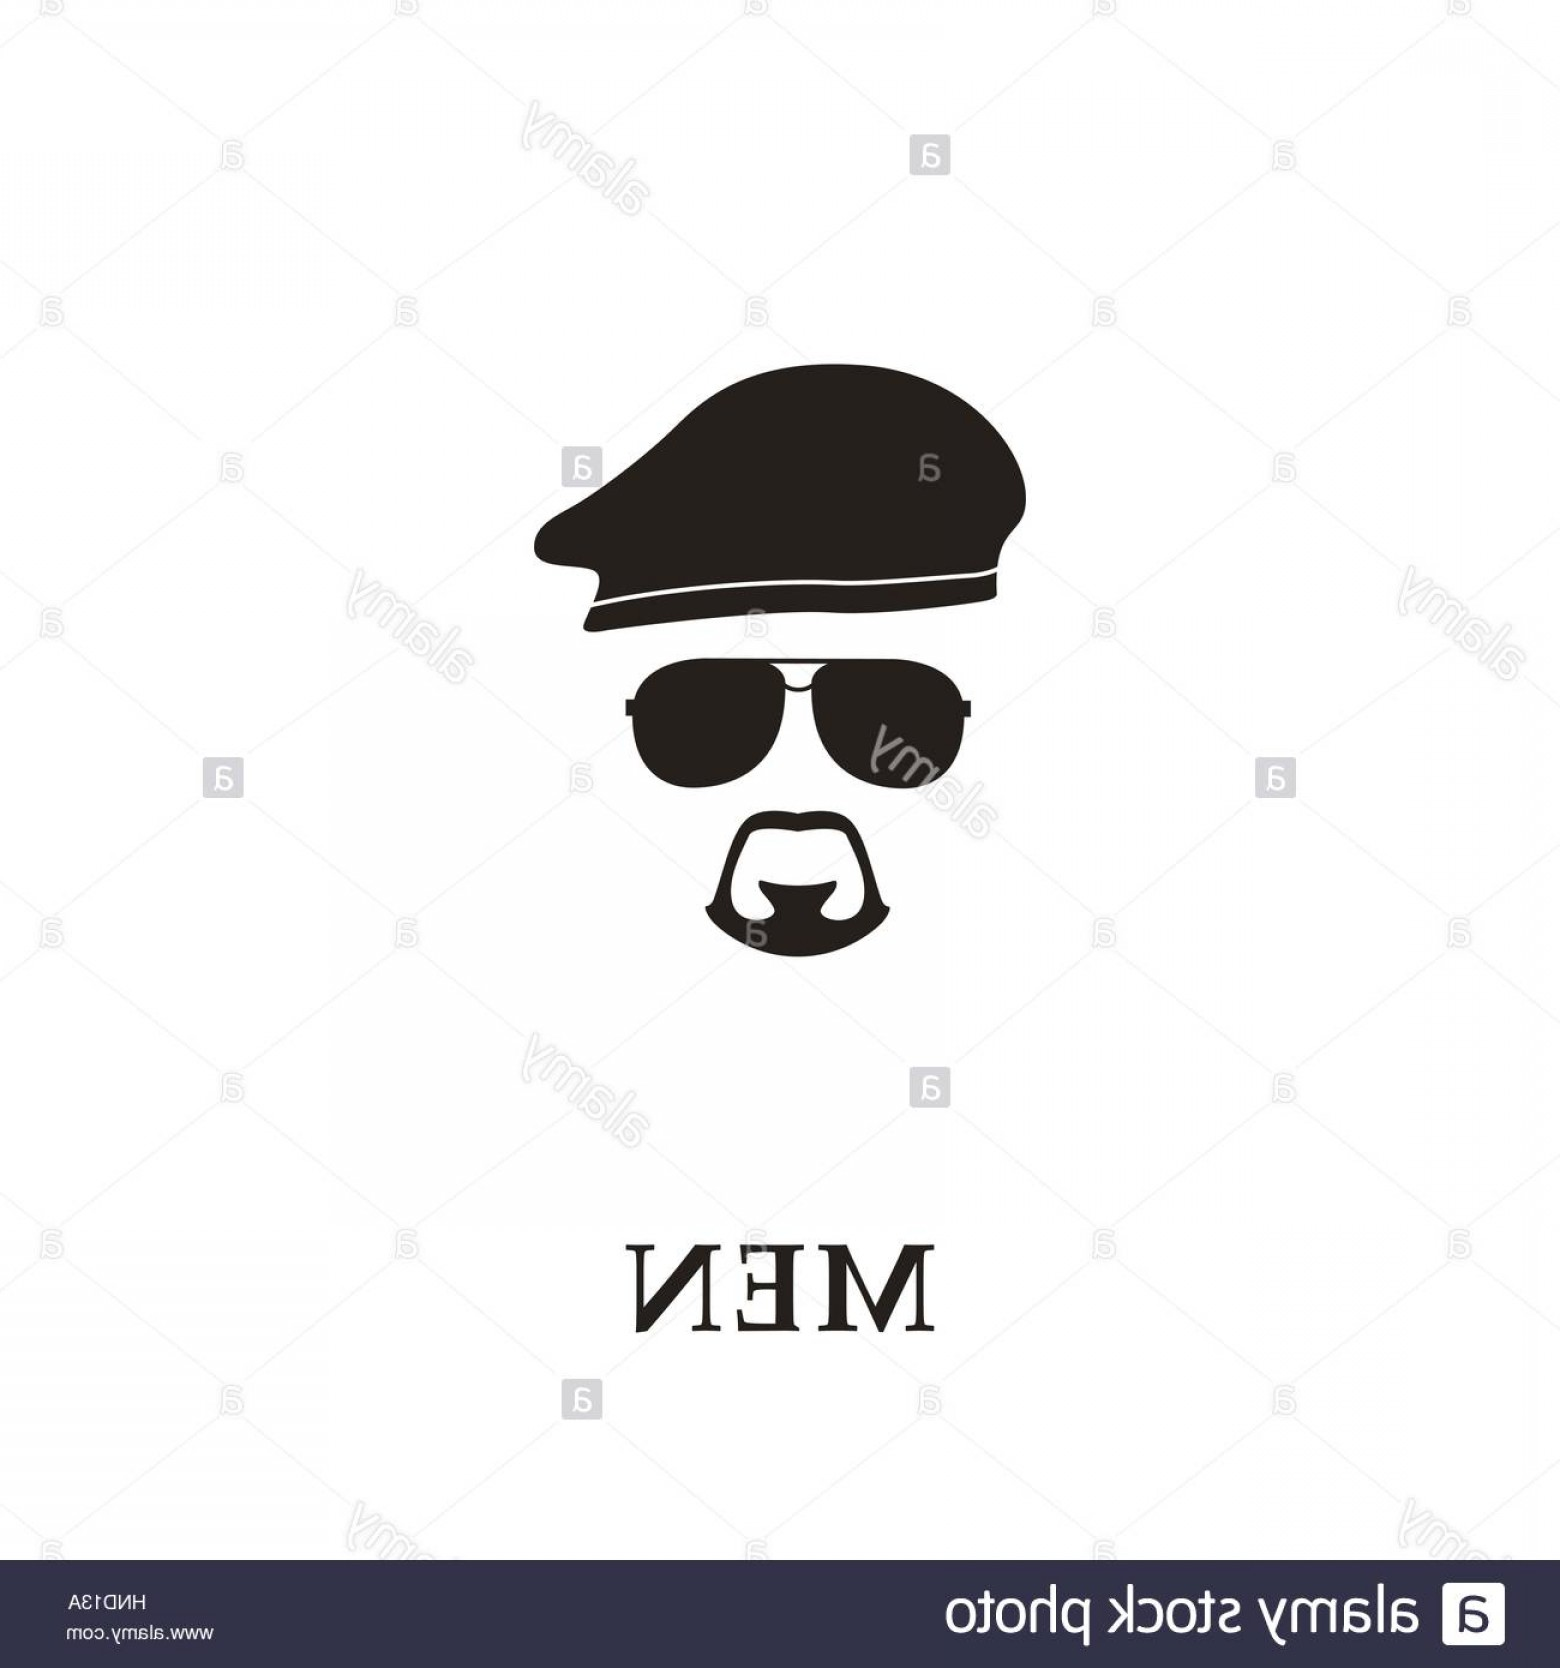 Beret Hat Vector: Stock Photo Silhouette Soldier With Beret Sunglasses And Goatee Vector Illustration